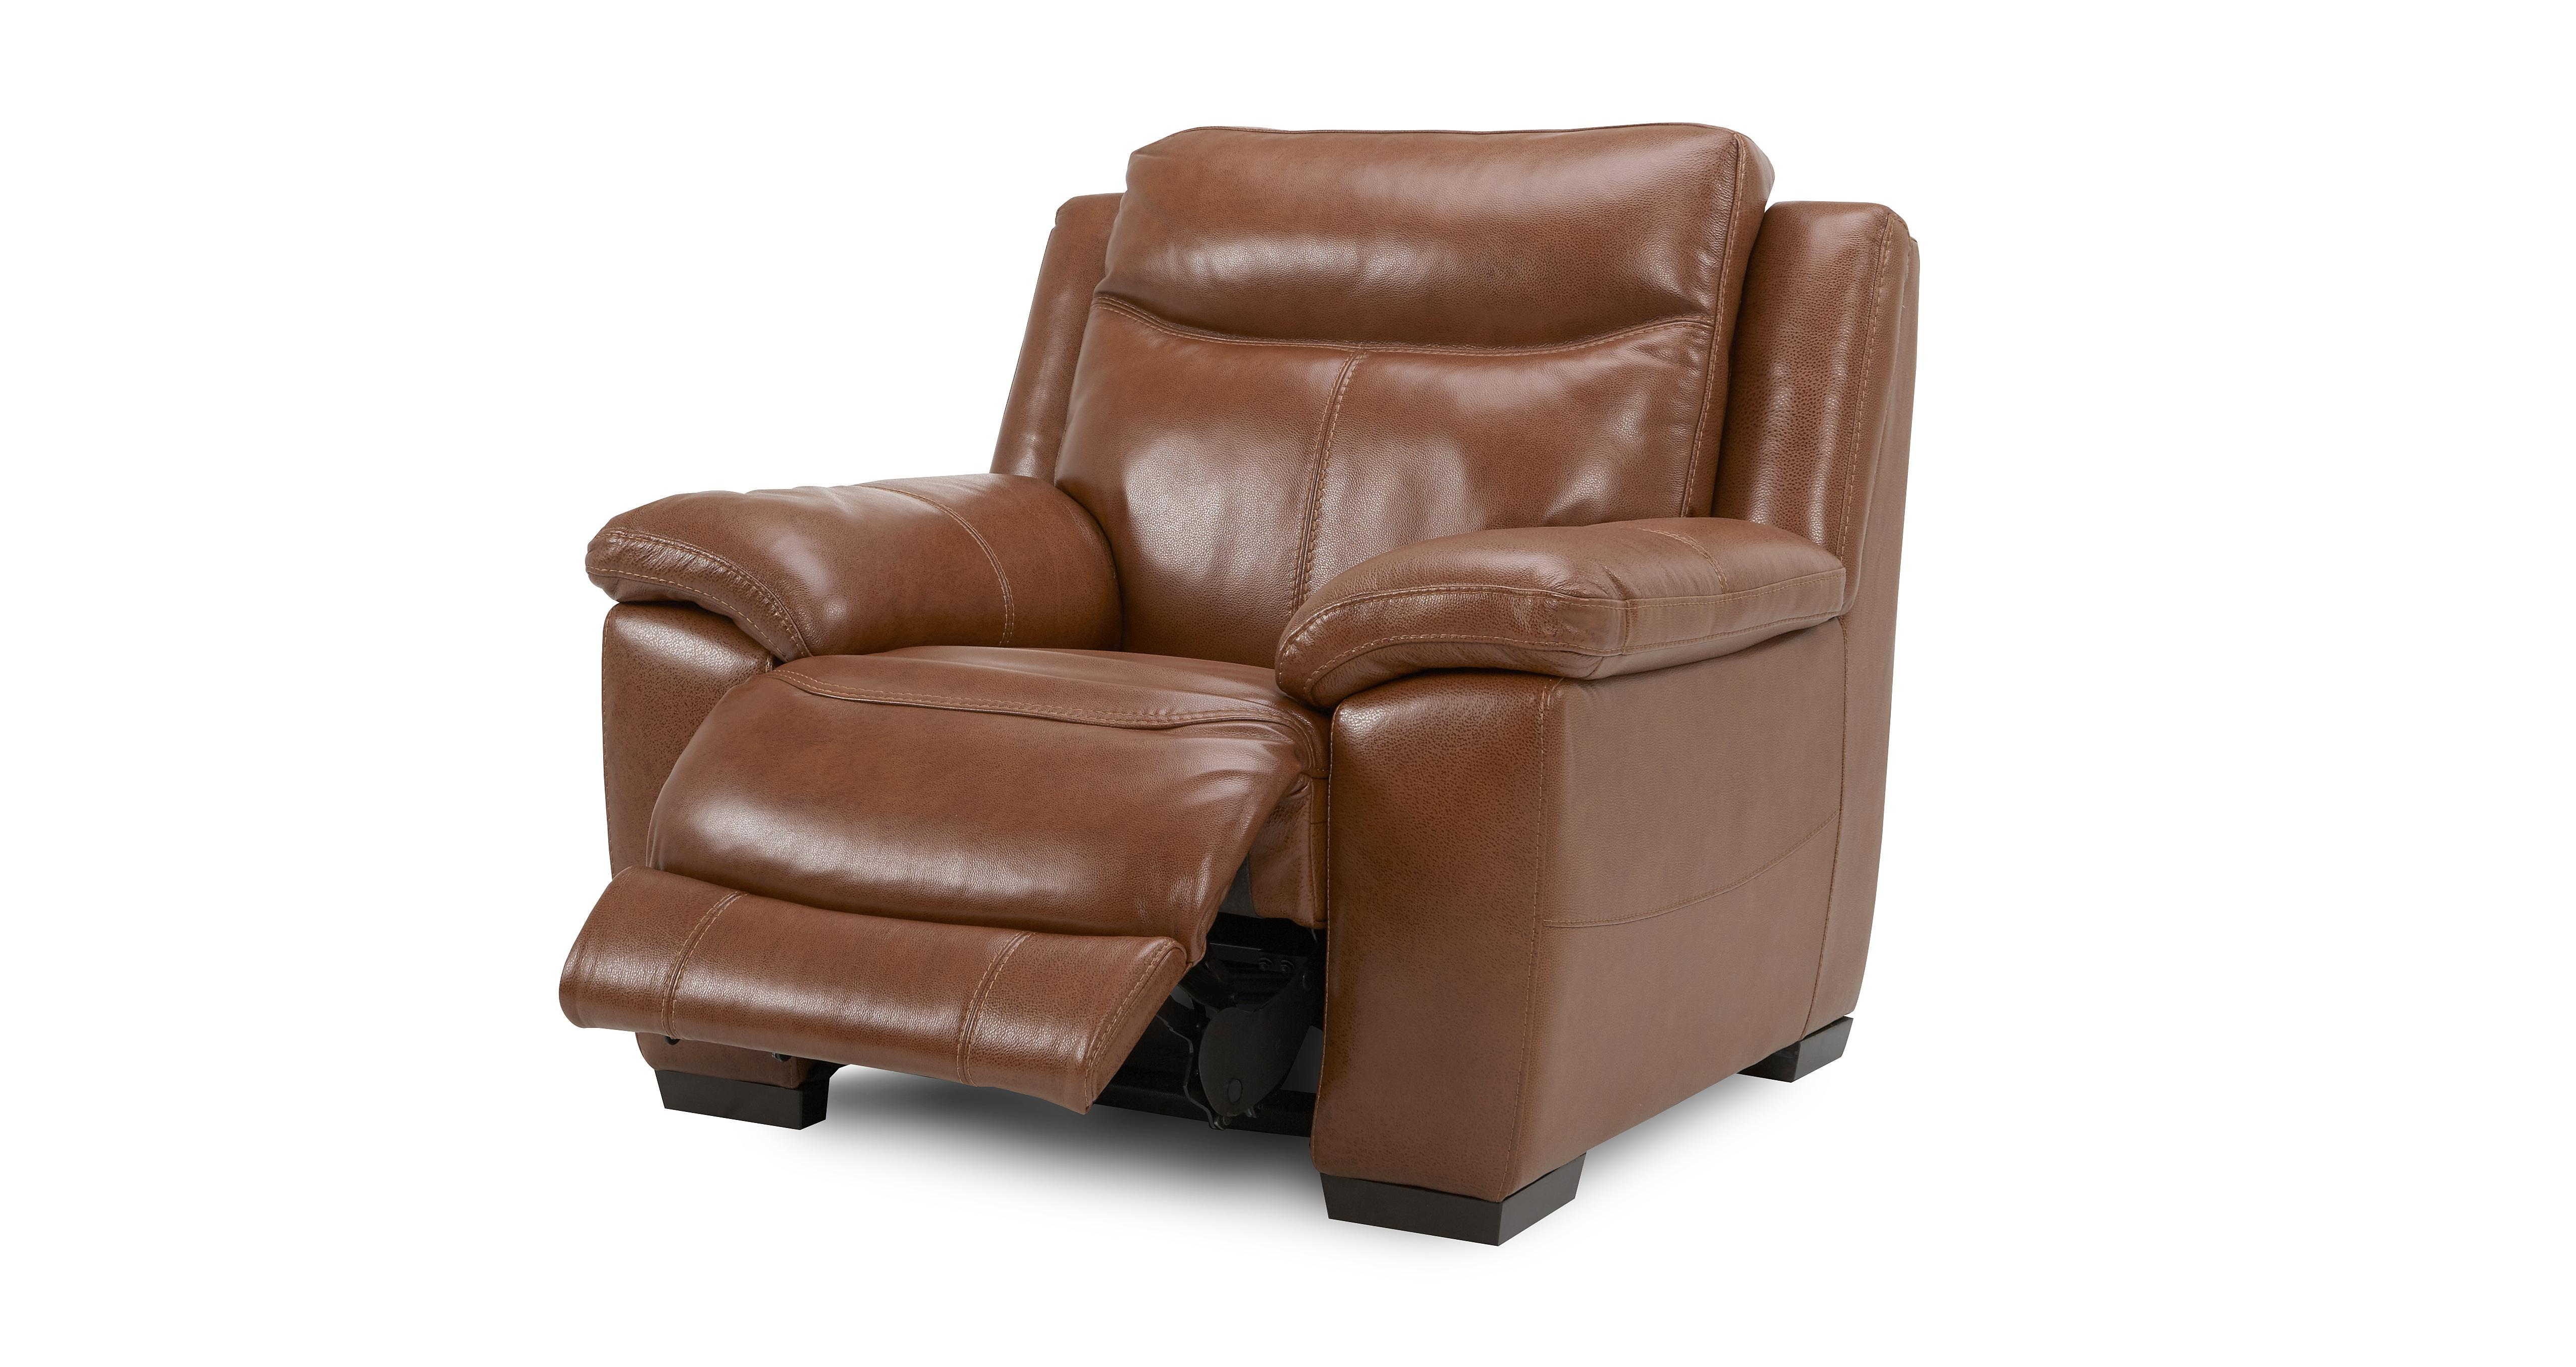 Liaison Electric Recliner Chair Brazil With Leather Look